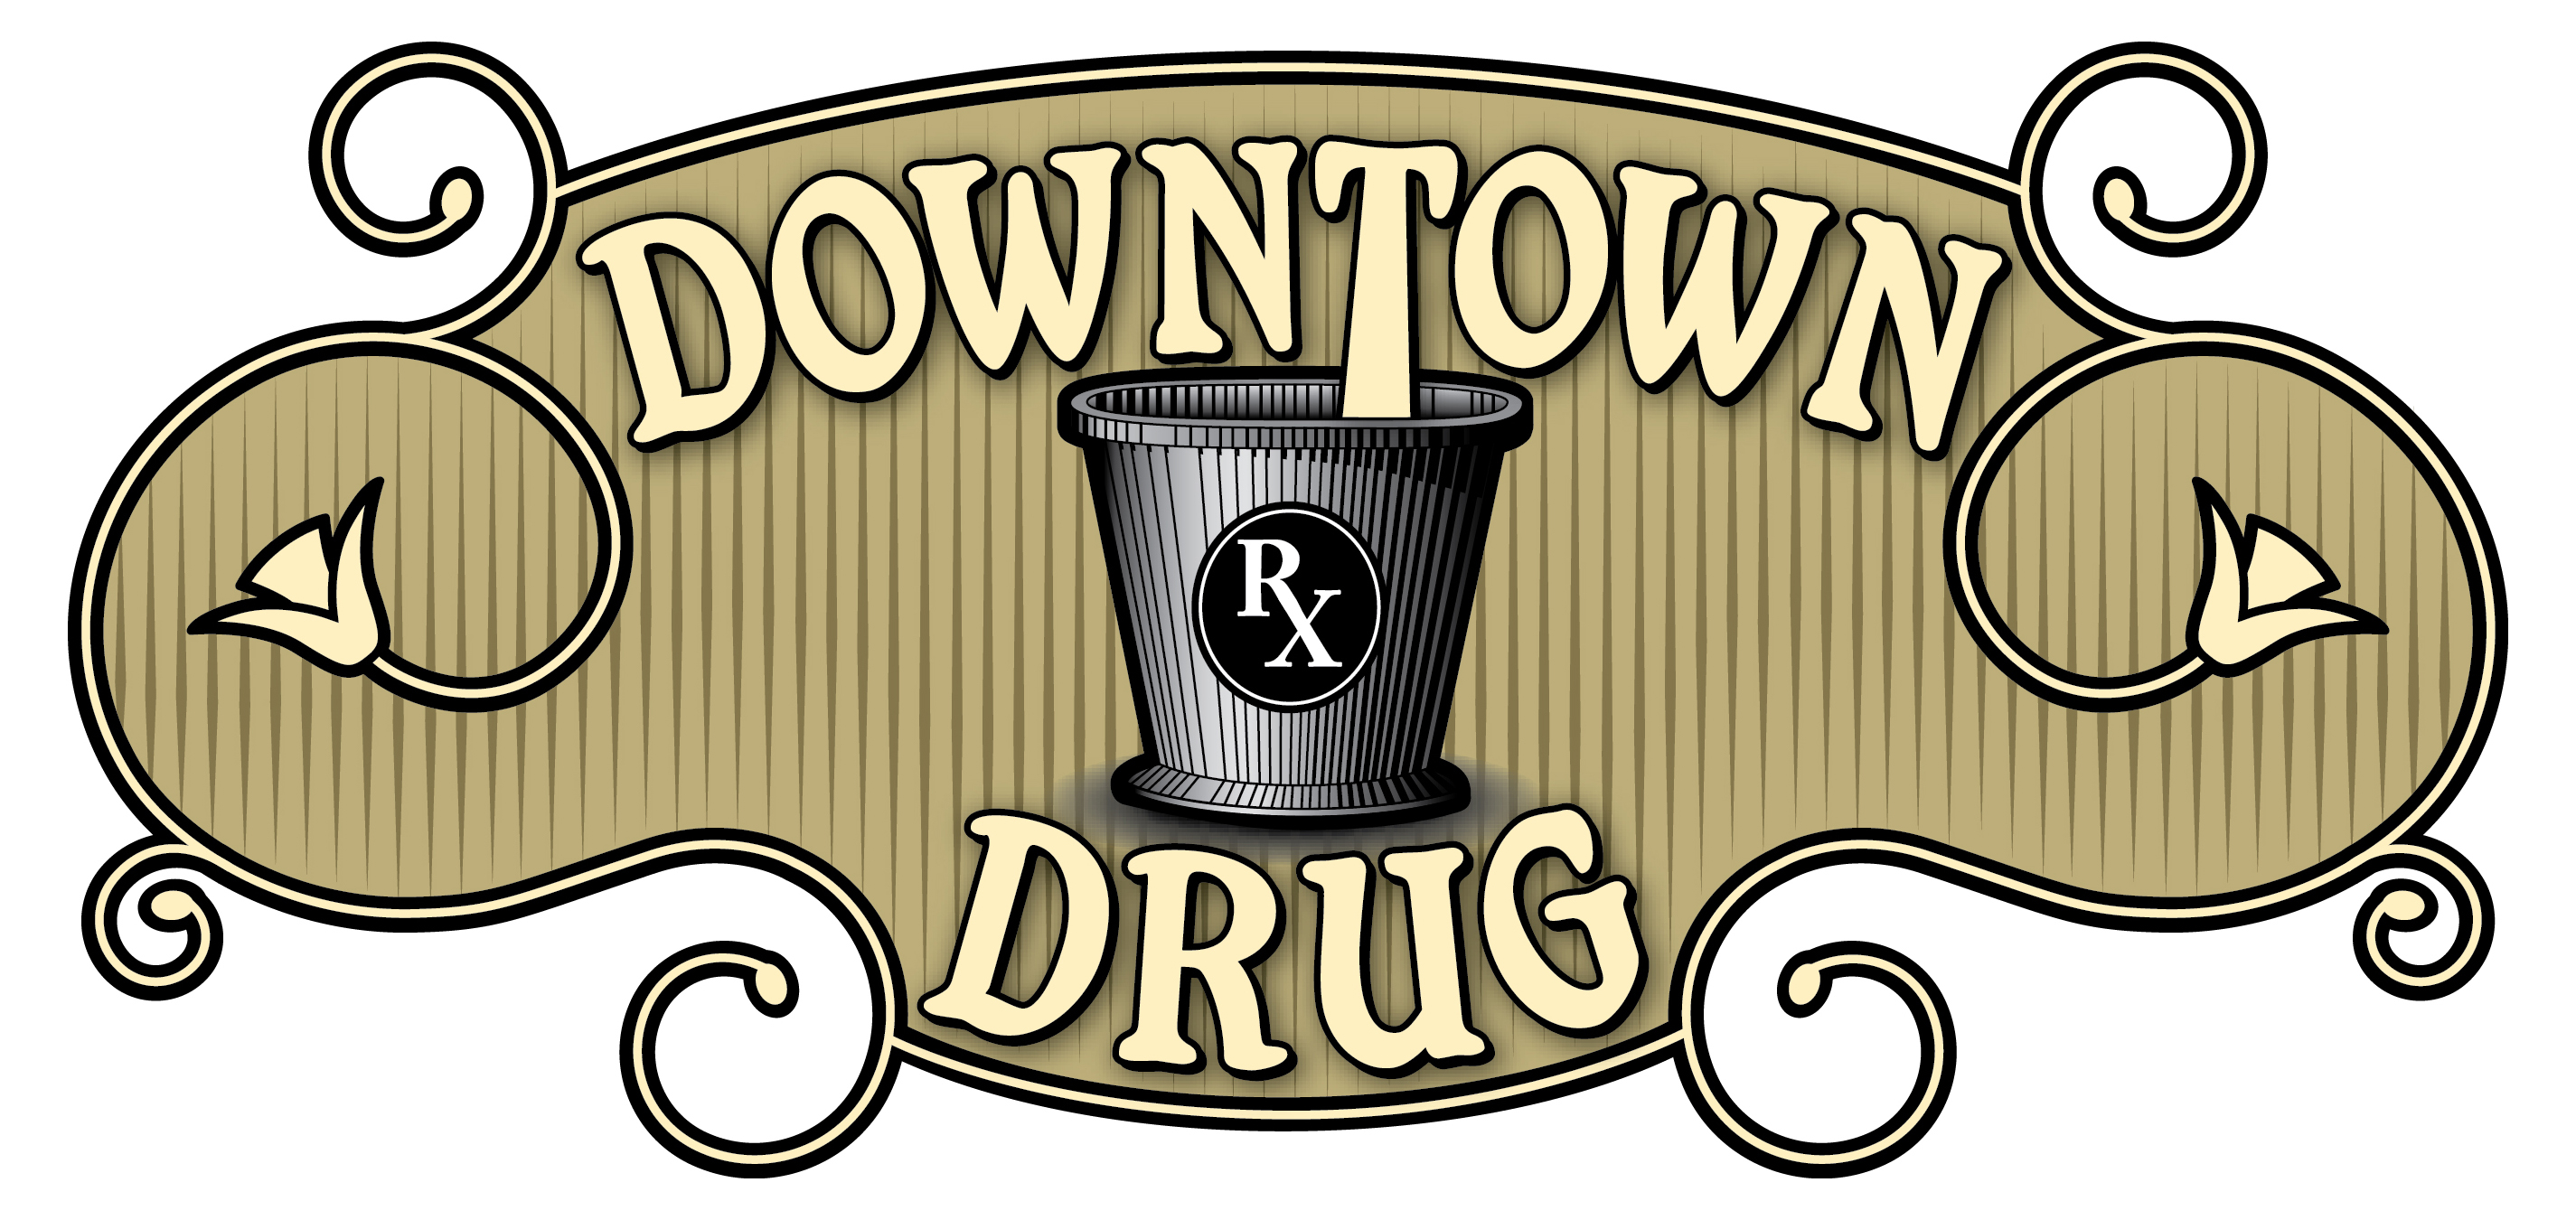 Downtown Drug